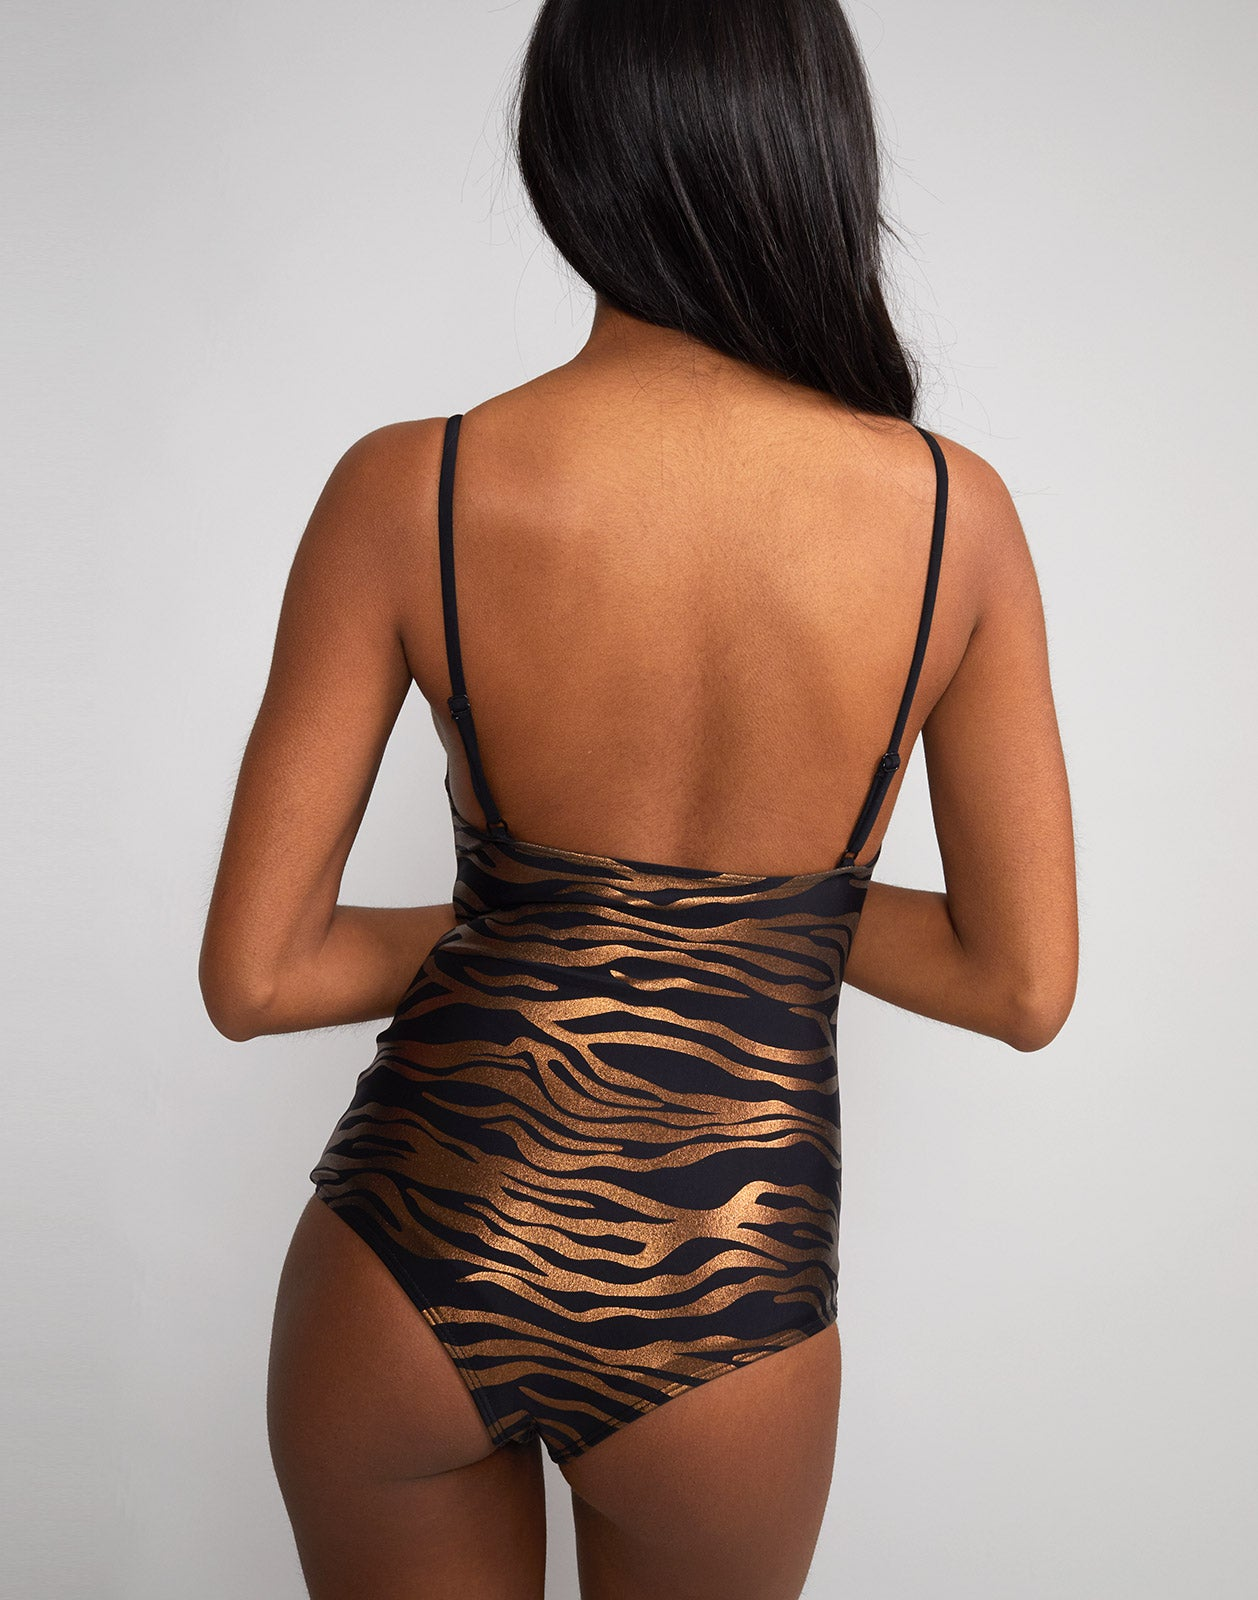 Back view of zebra sandi one piece swimsuit